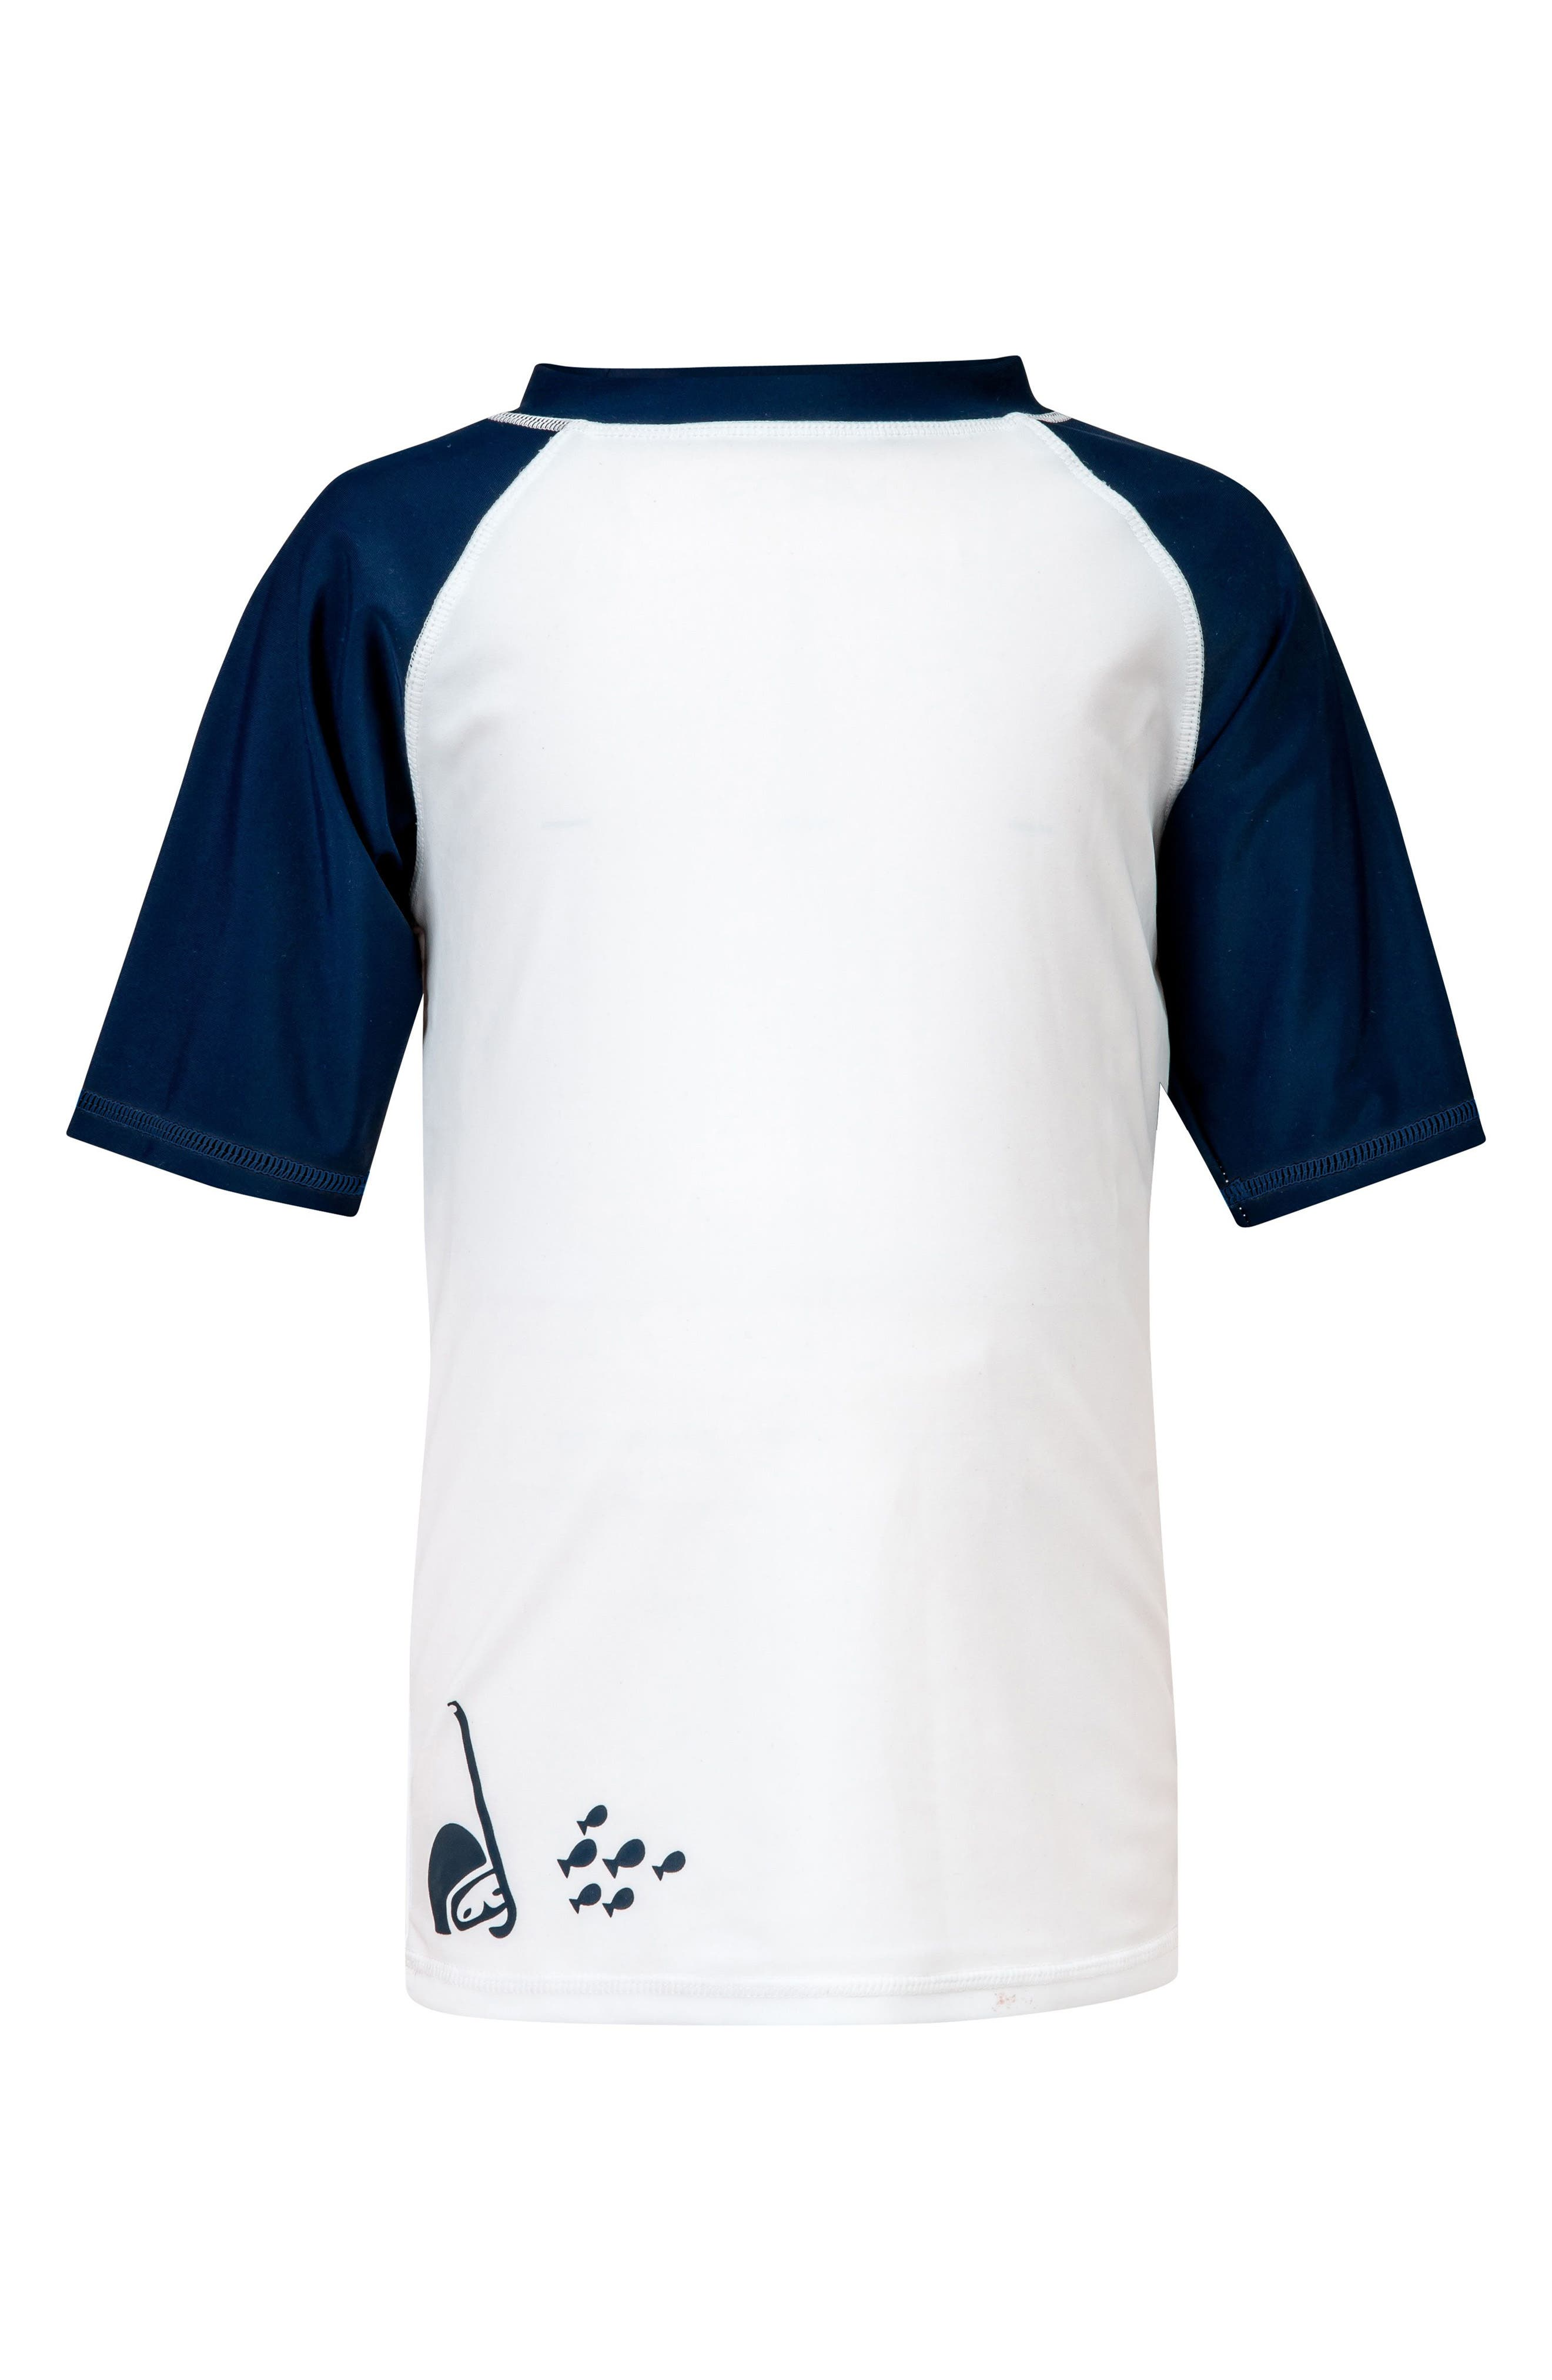 Ocean Explorer Short Sleeve Rashguard,                             Main thumbnail 1, color,                             White/ Navy